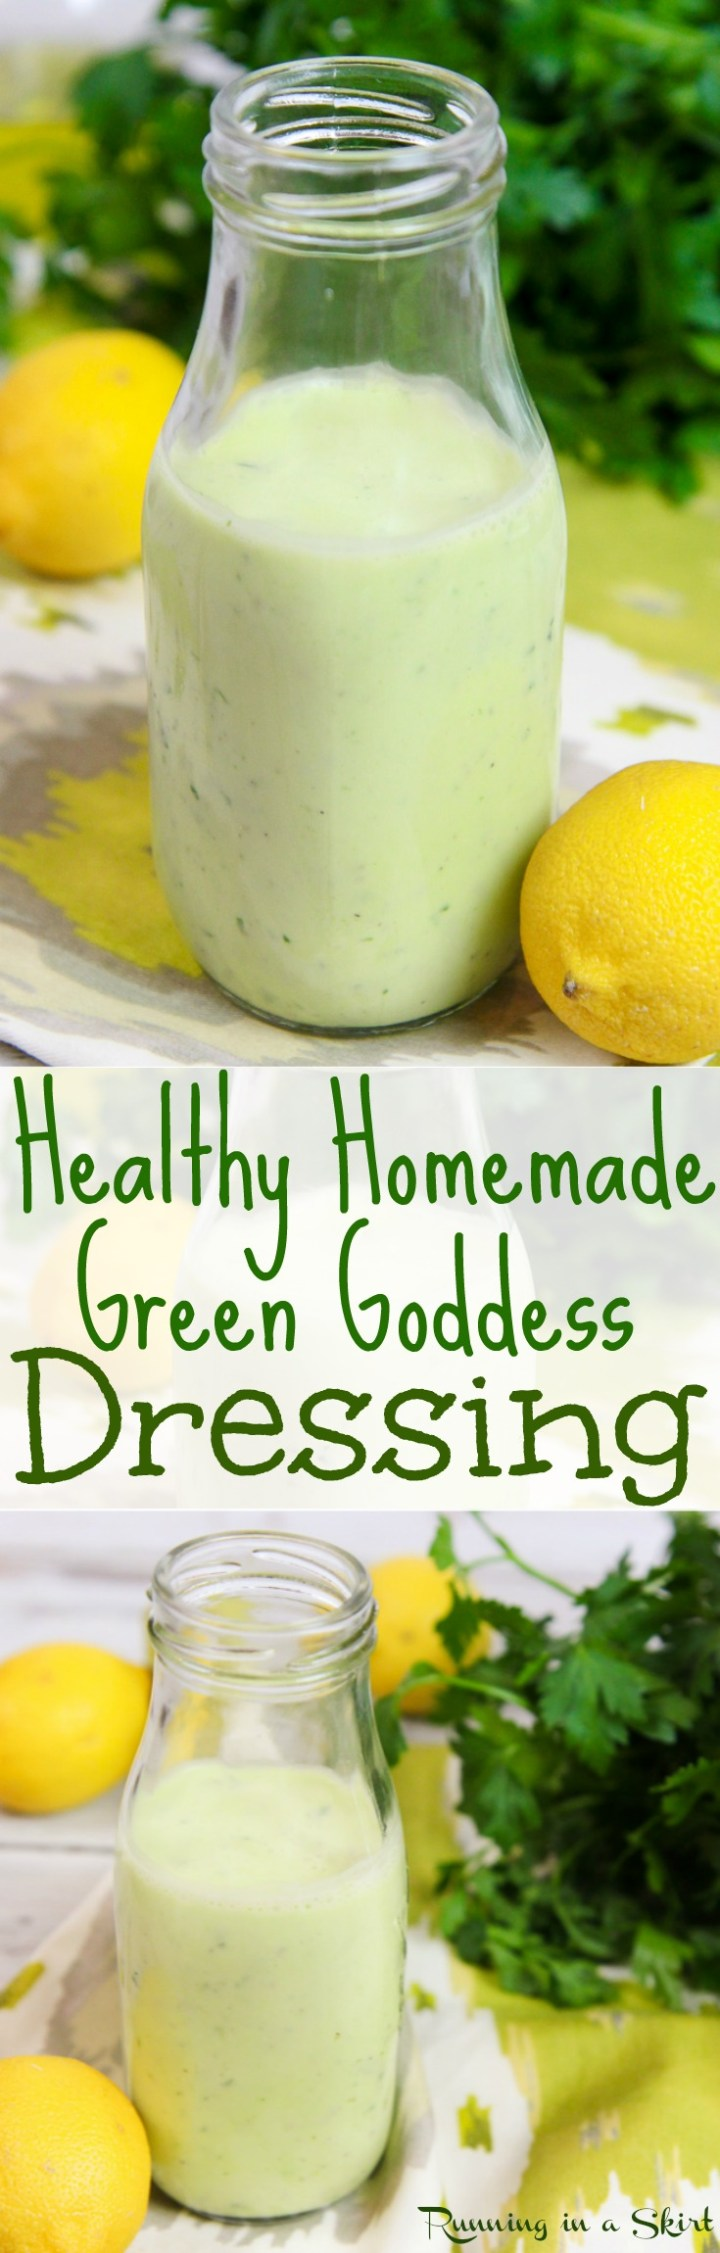 Healthy Homemade Green Goddess Dressing recipe. An easy, classic and creamy salad dressing with greek yogurt and fresh herbs. A clean eating, low carb and light version! / Running in a Skirt via @juliewunder